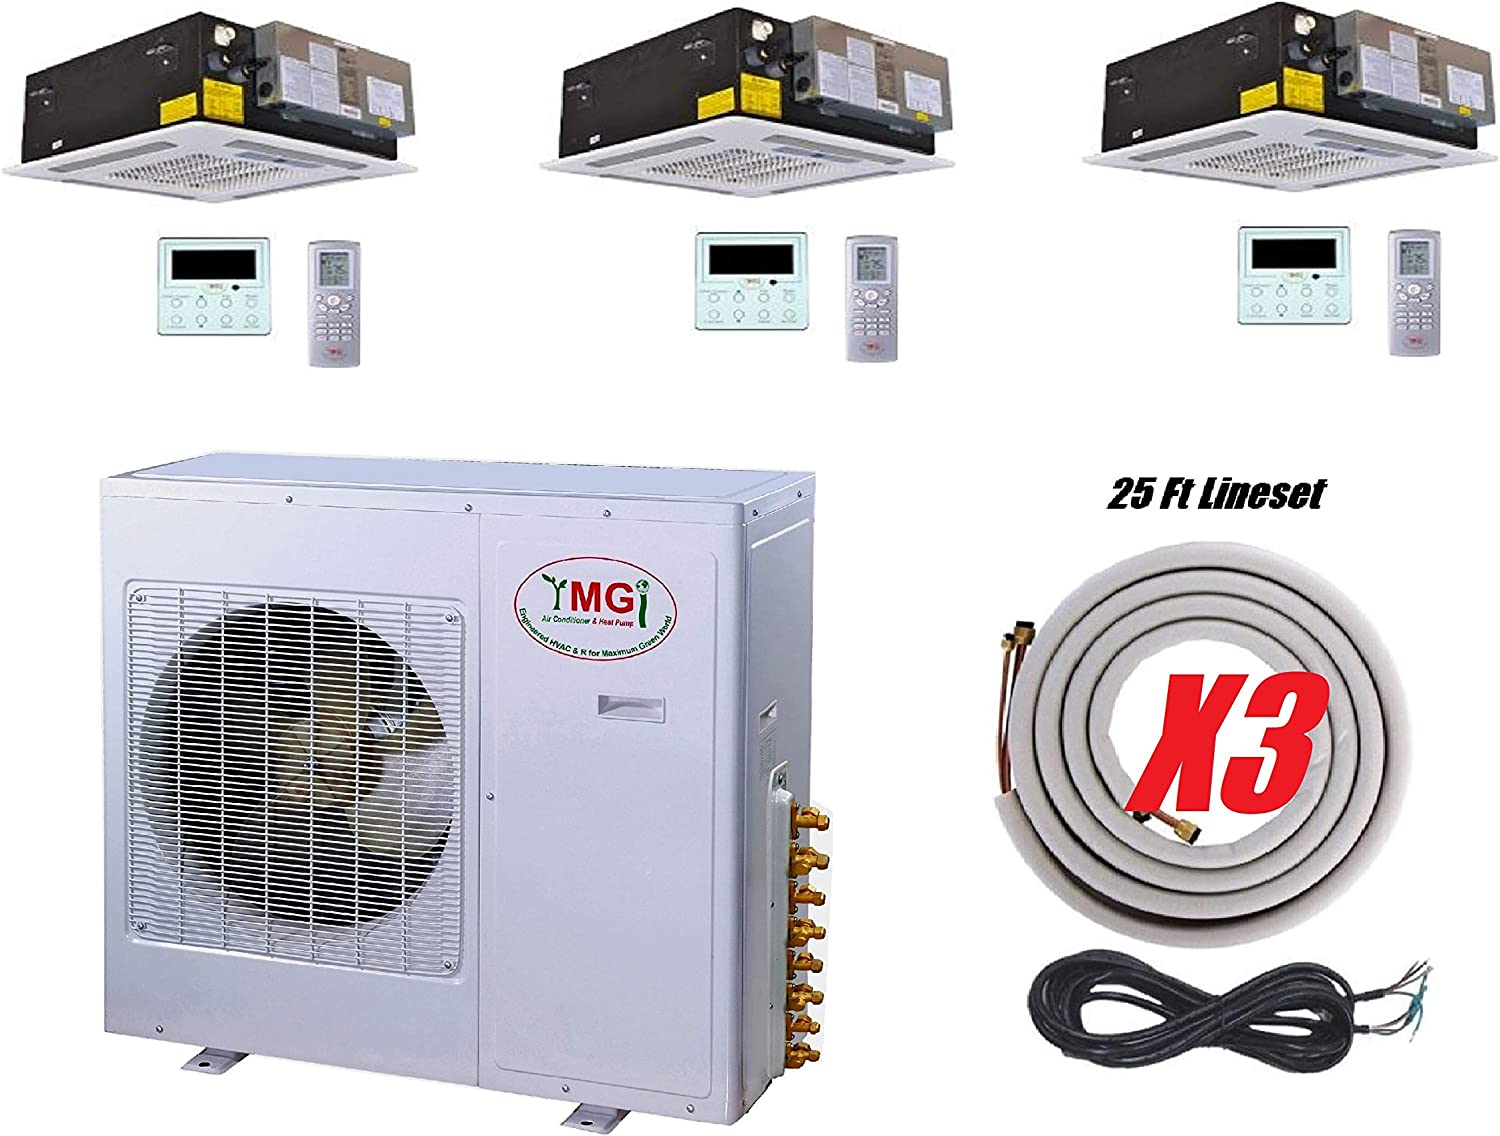 Ymgi Tri Zone 42000 Btu 21 Seer 12k 12k 18k Ceiling Mounted Ductless Mini Split Air Conditioner With Heat Pump For Home Office Apartment With 25 Ft Lineset Installation Kits Home